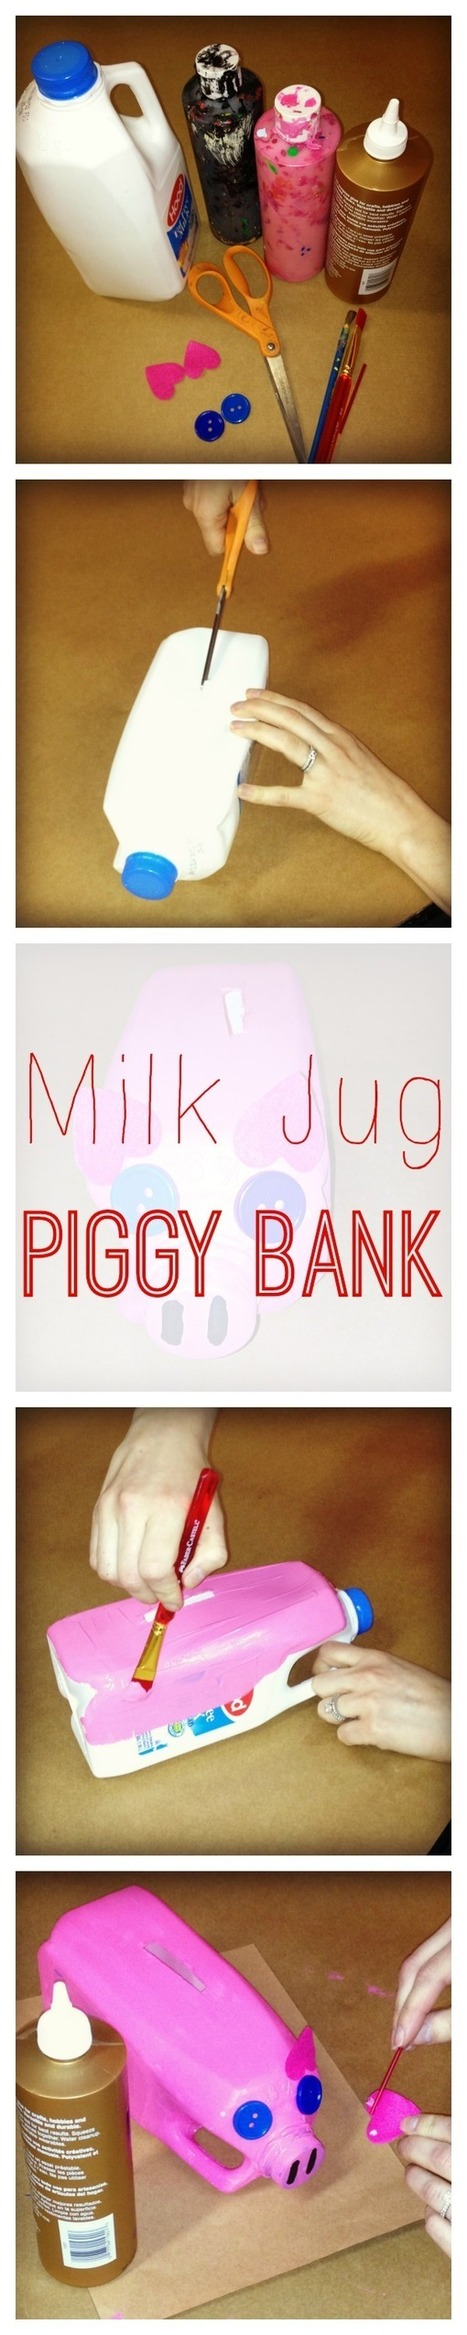 WeeWork Kids Crafts: Milk Jug Piggy Bank - Upcycled Craft ... | Top 10 Summertime Kids Crafts | Scoop.it